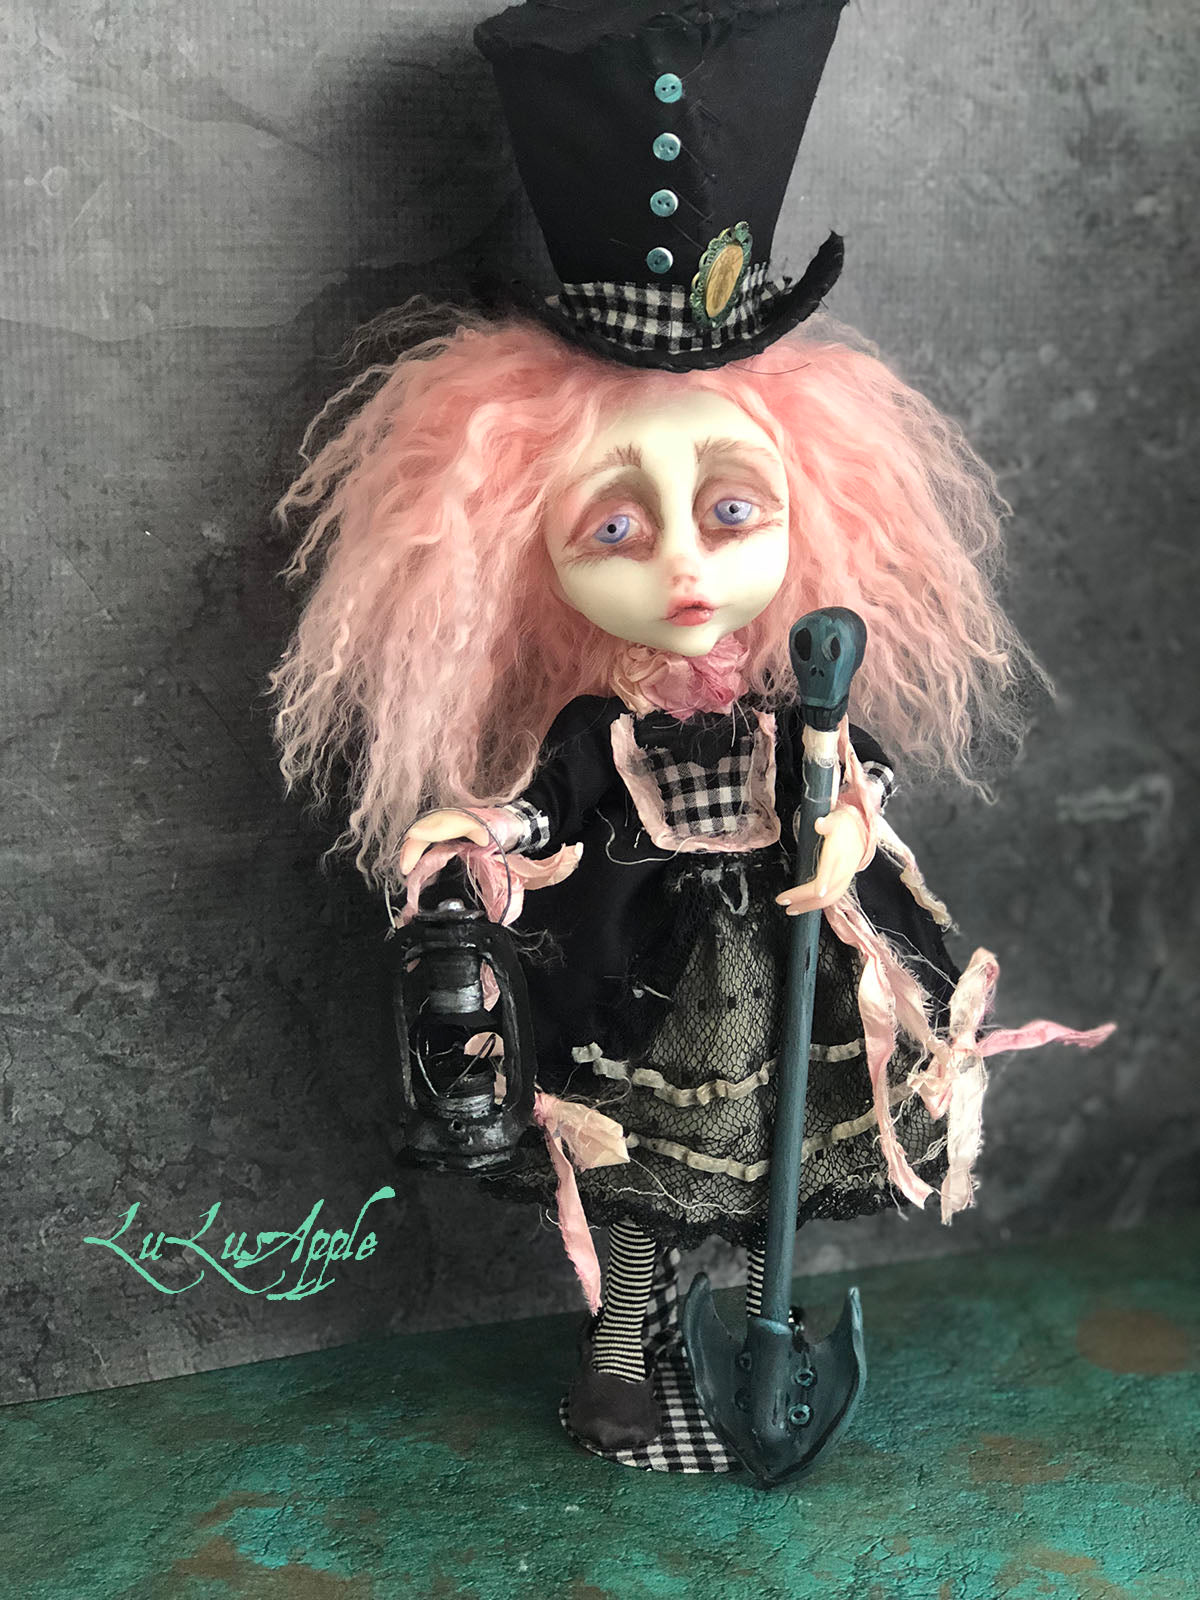 Fenton the Grave Digger OOAK LuLusApple Art Doll